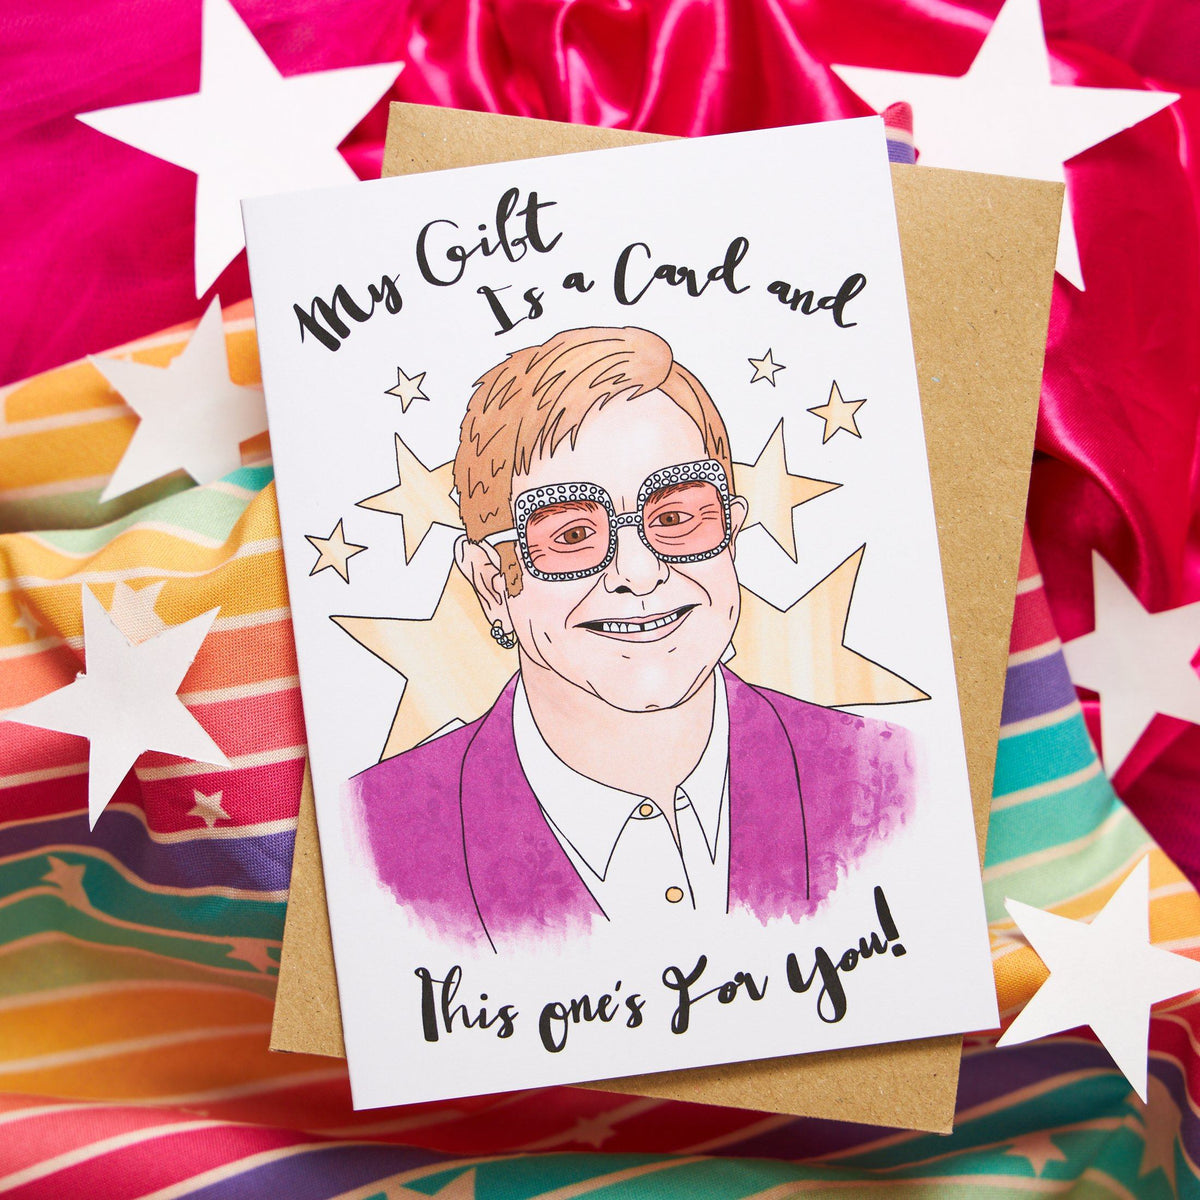 My Gift Is a Card and This One's for You Card